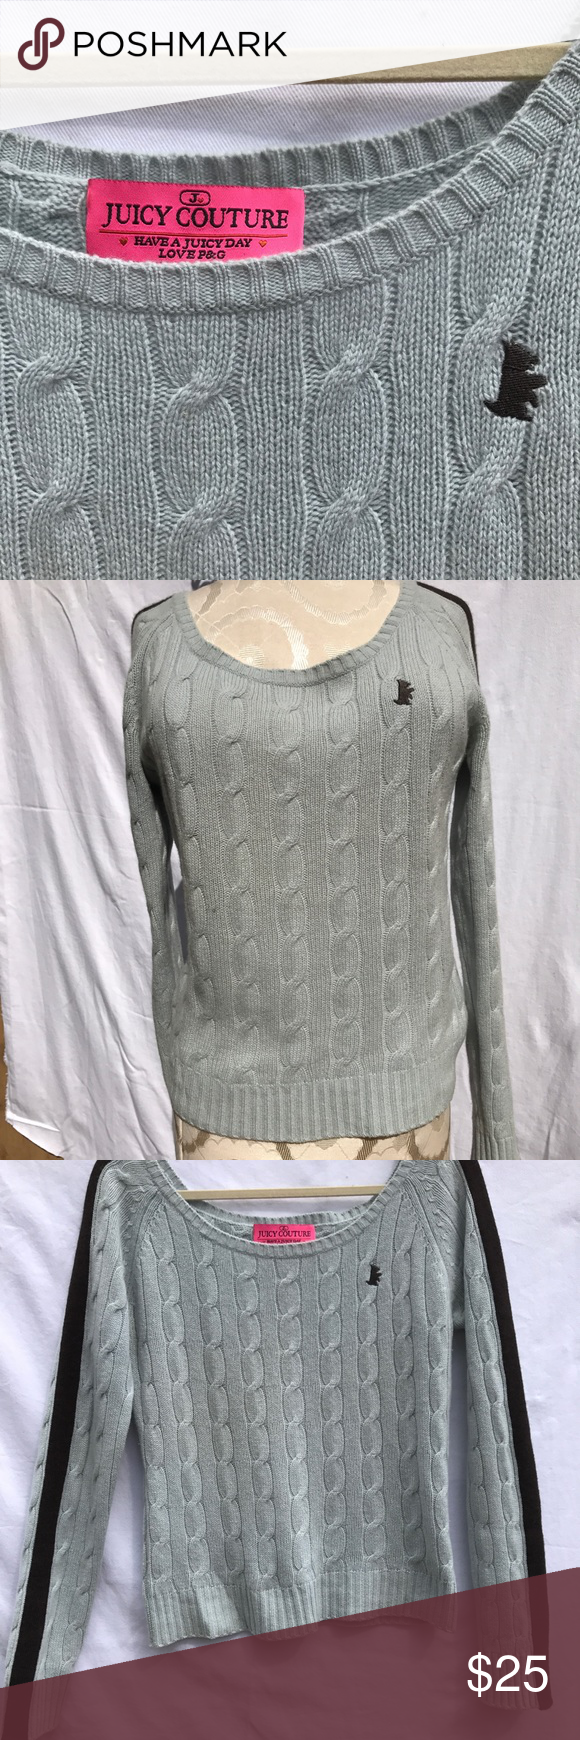 Juicy Couture cashmere sweater size L Juicy Couture baby blue ...